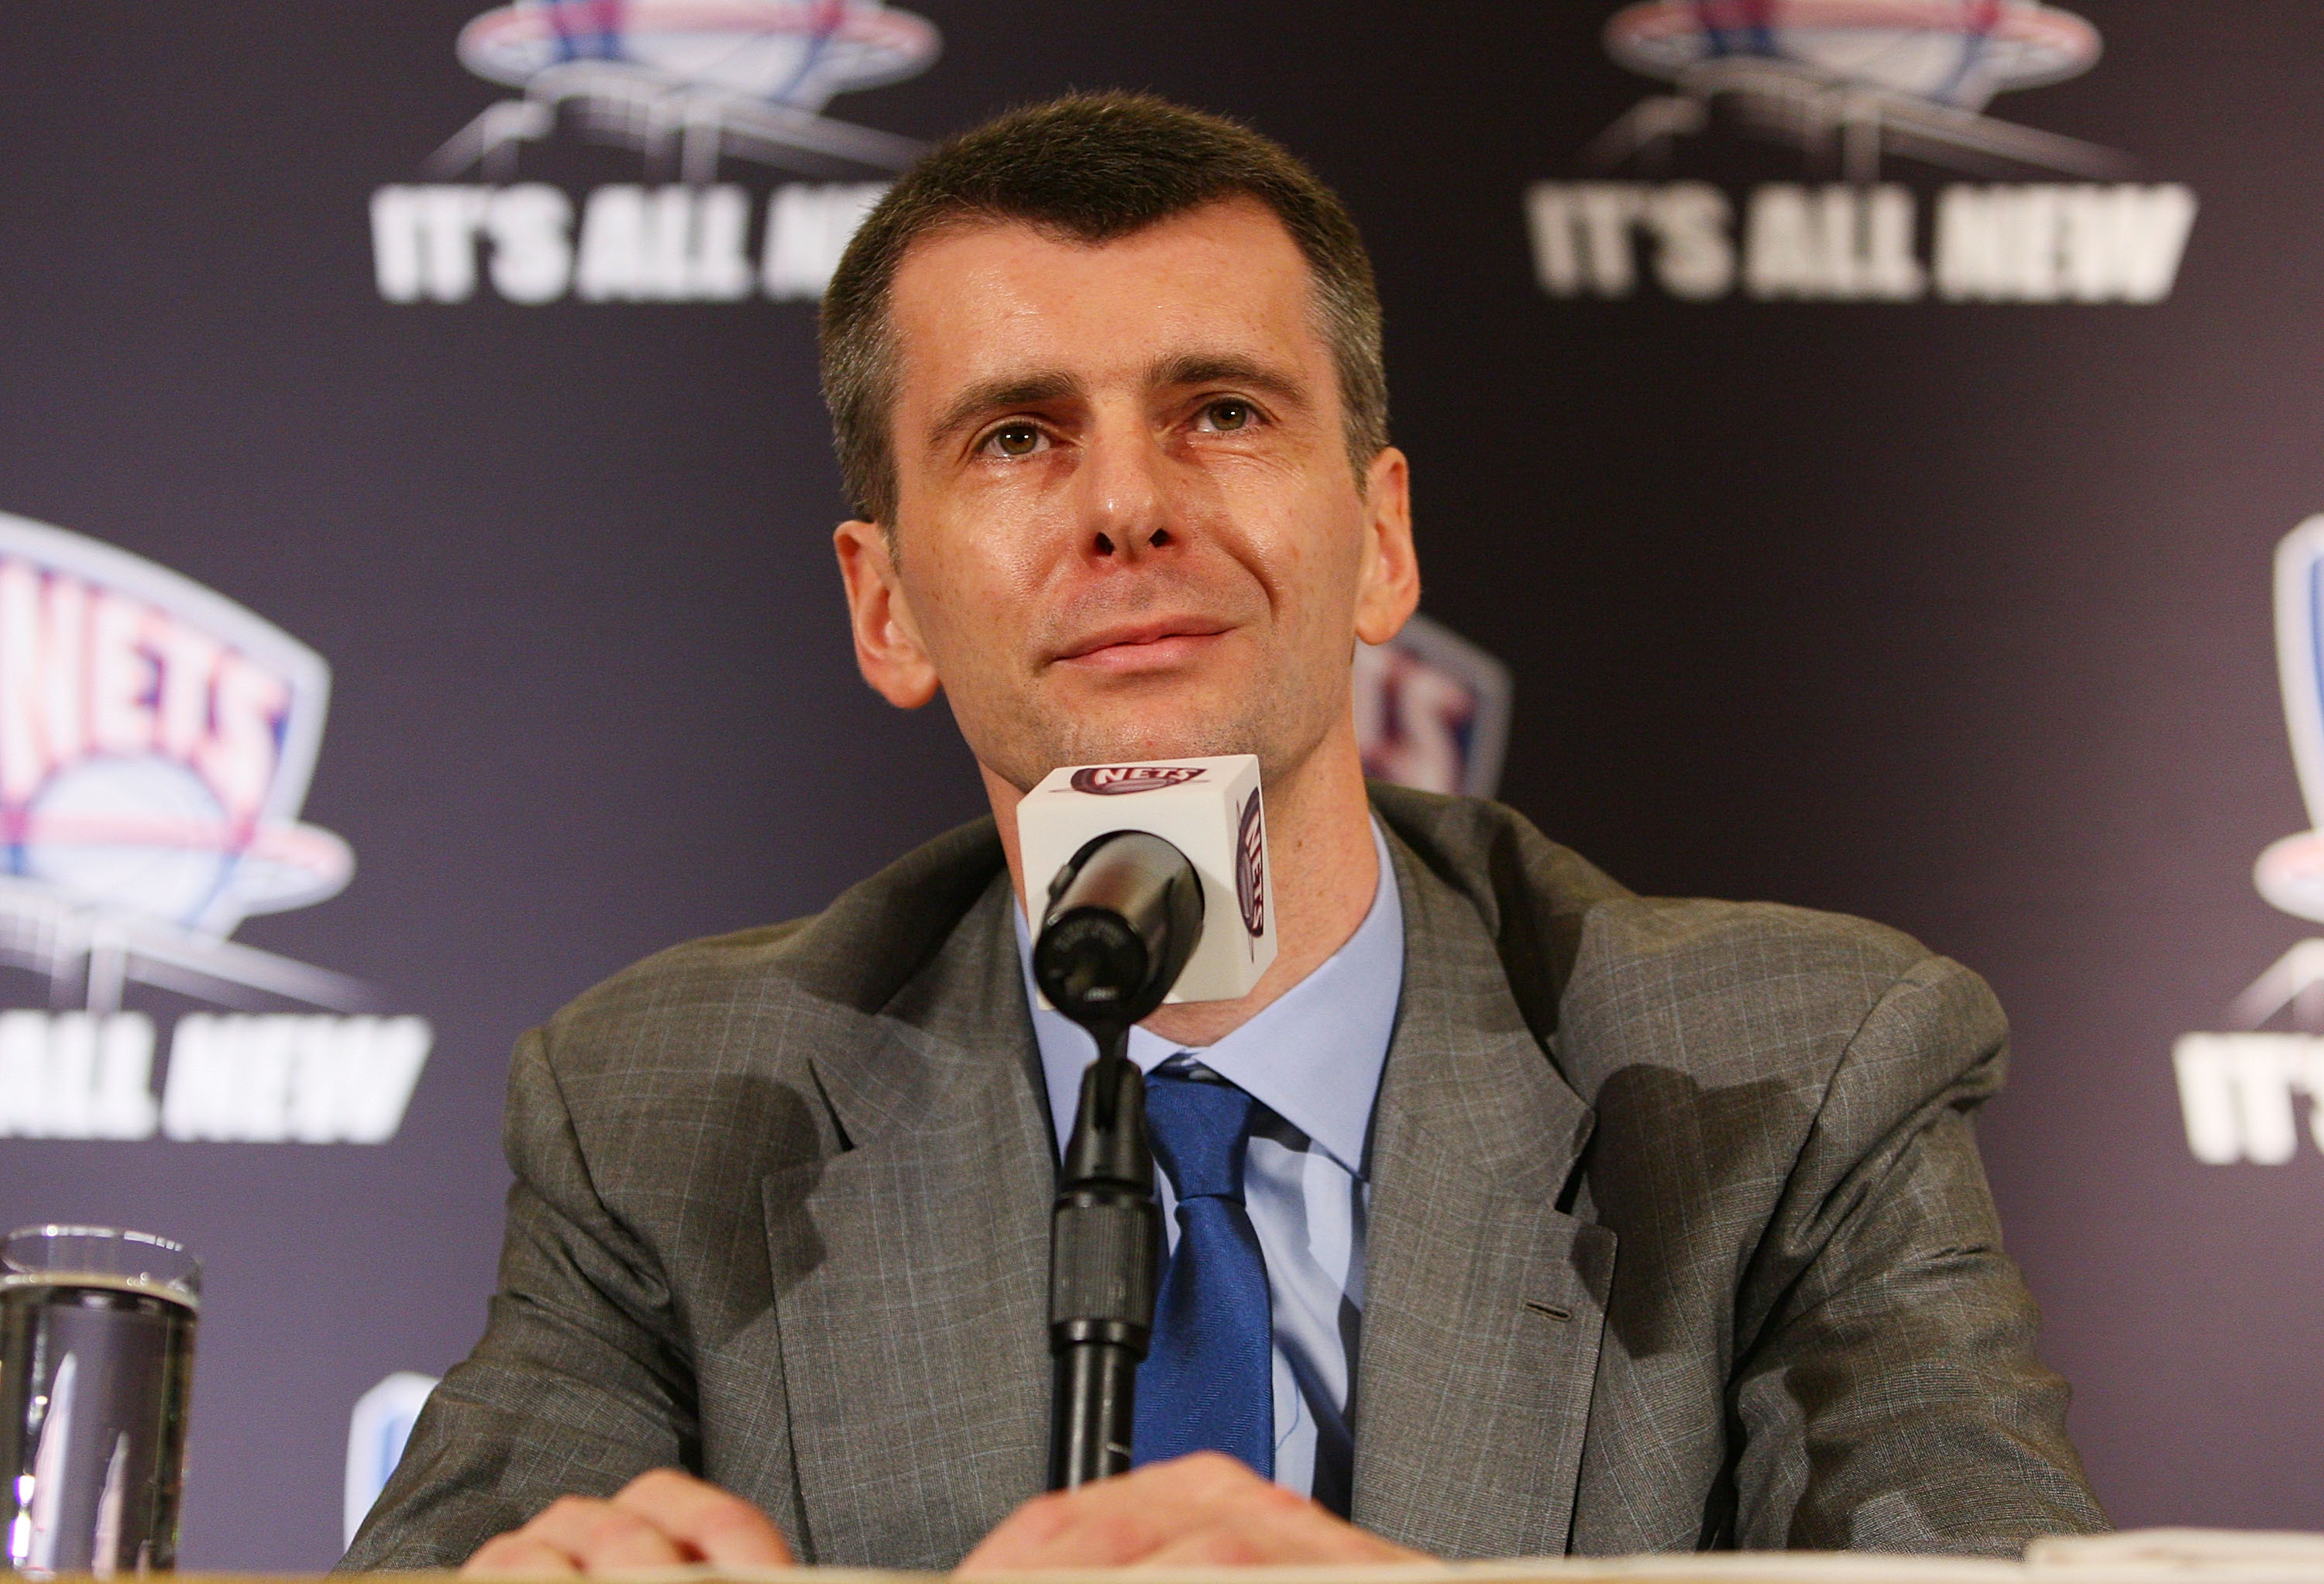 1e1419af1f9 NEW YORK - MAY 19  New Jersey Nets owner Mikhail Prokhorov addresses the  media during